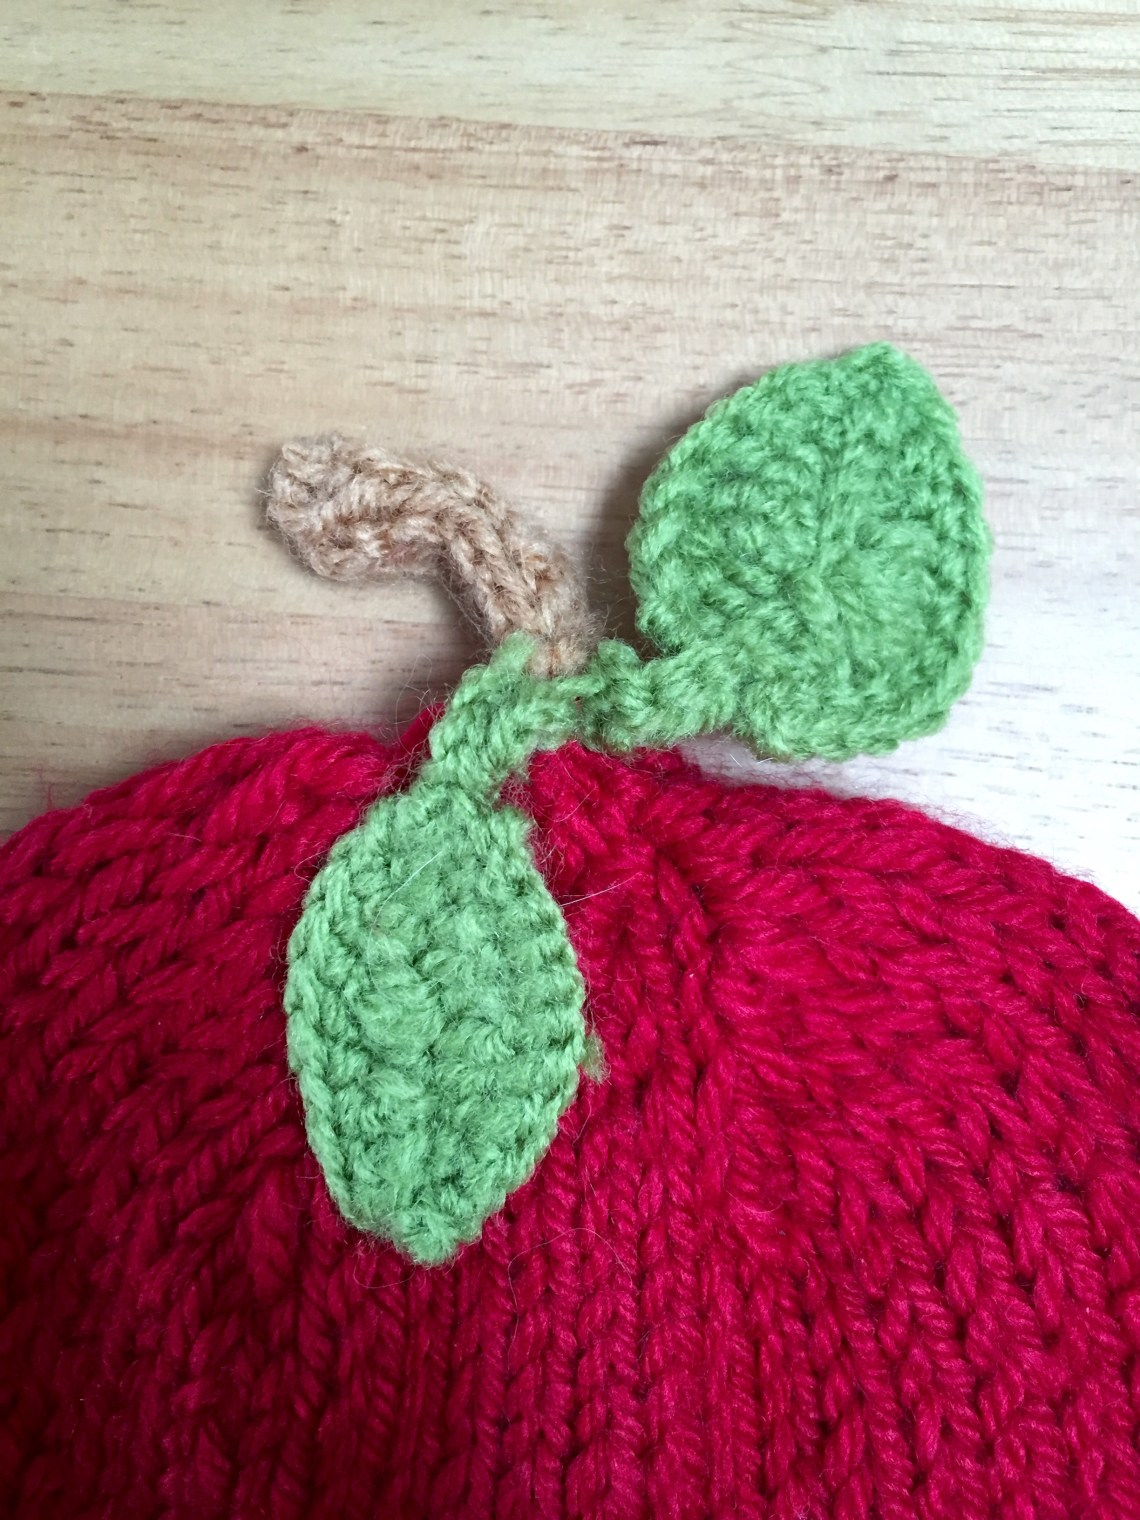 Baby hat to look like an apple with crocheted leaves